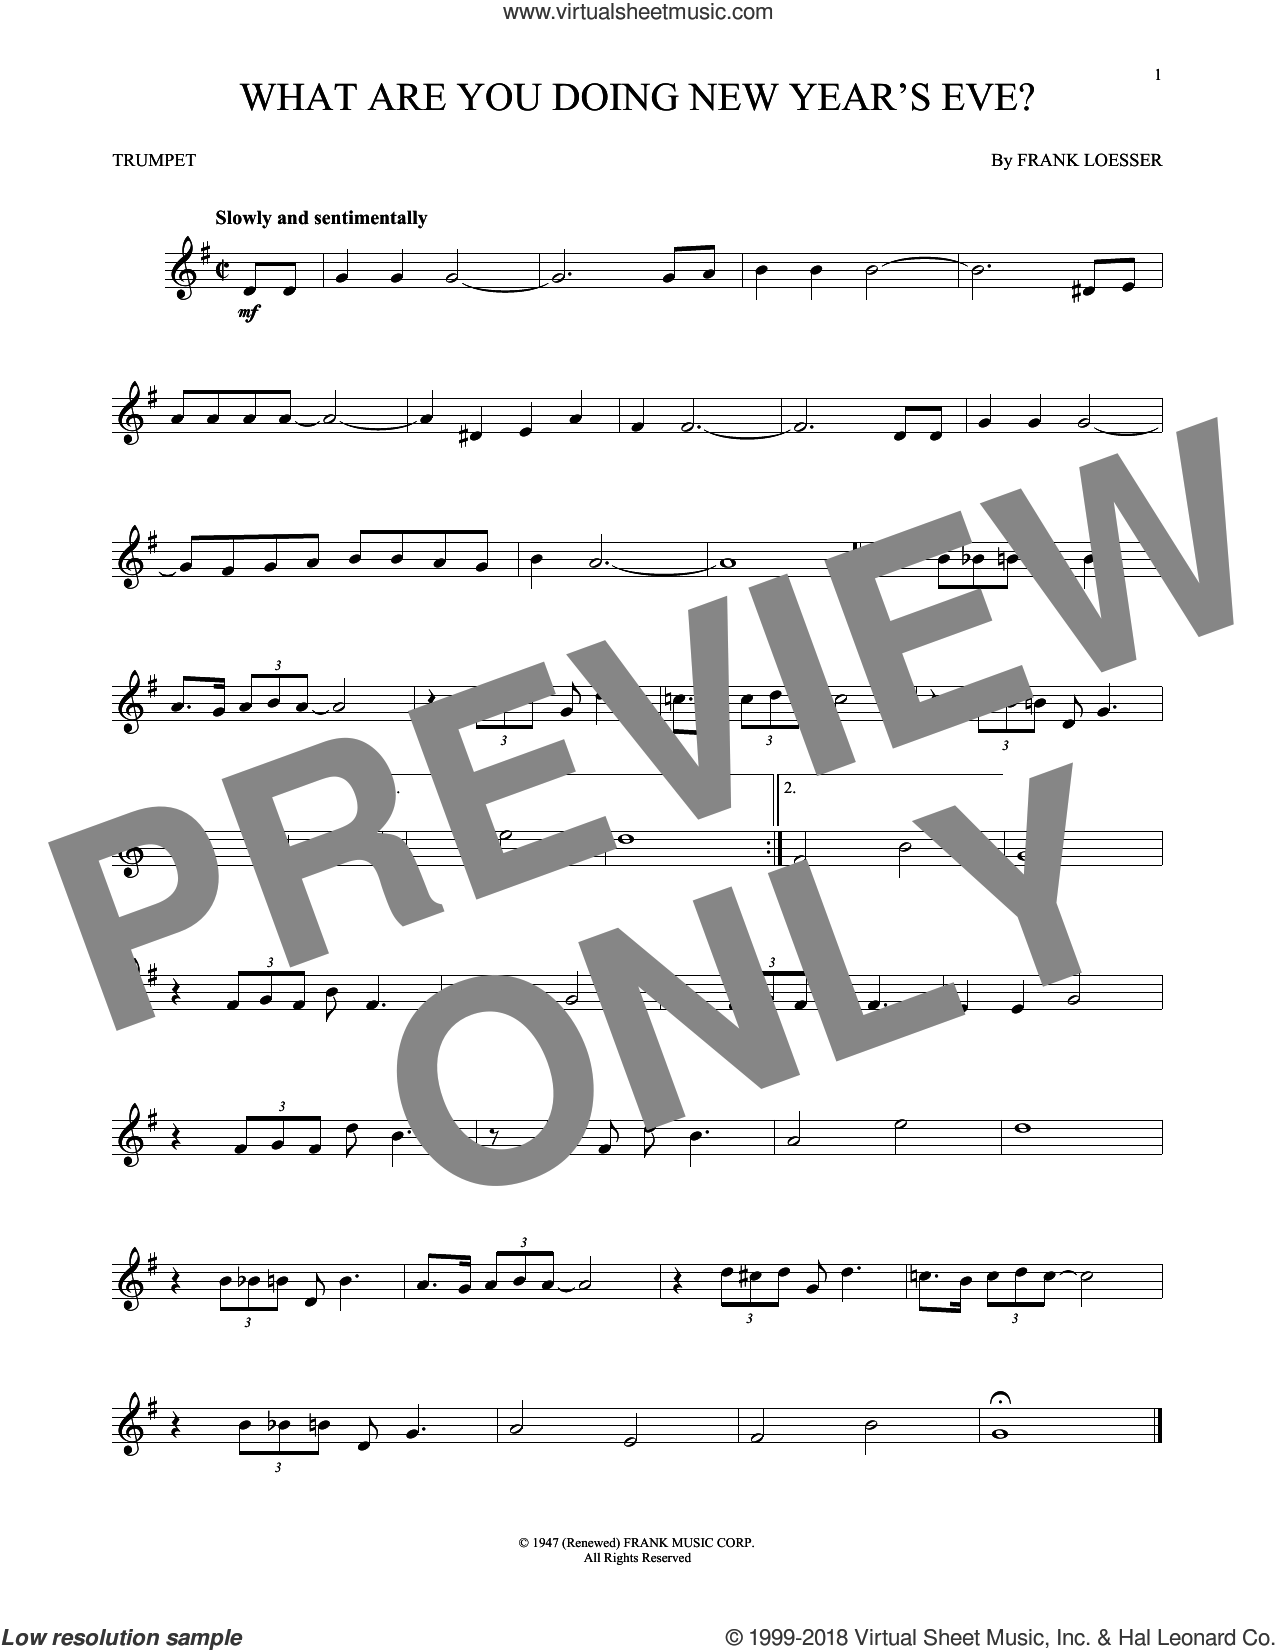 What Are You Doing New Year's Eve? sheet music for trumpet solo by Frank Loesser, intermediate skill level